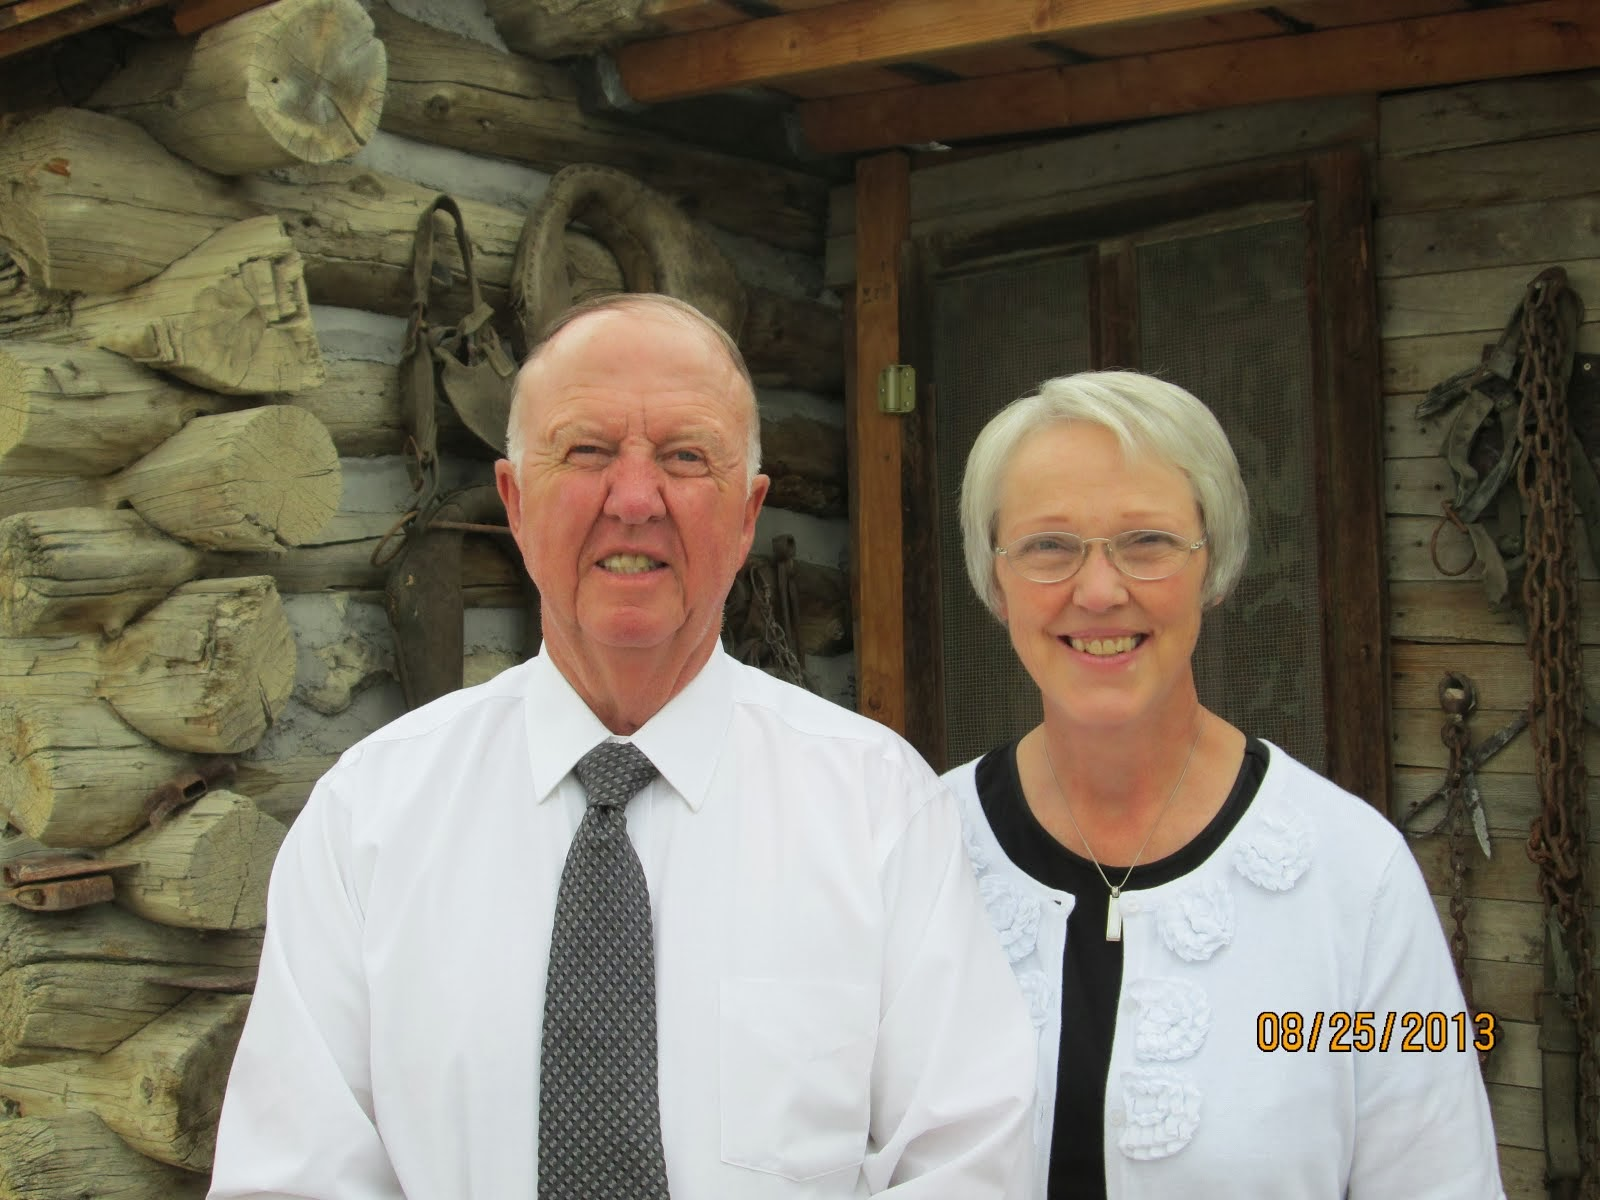 Elder and Sister Olsen